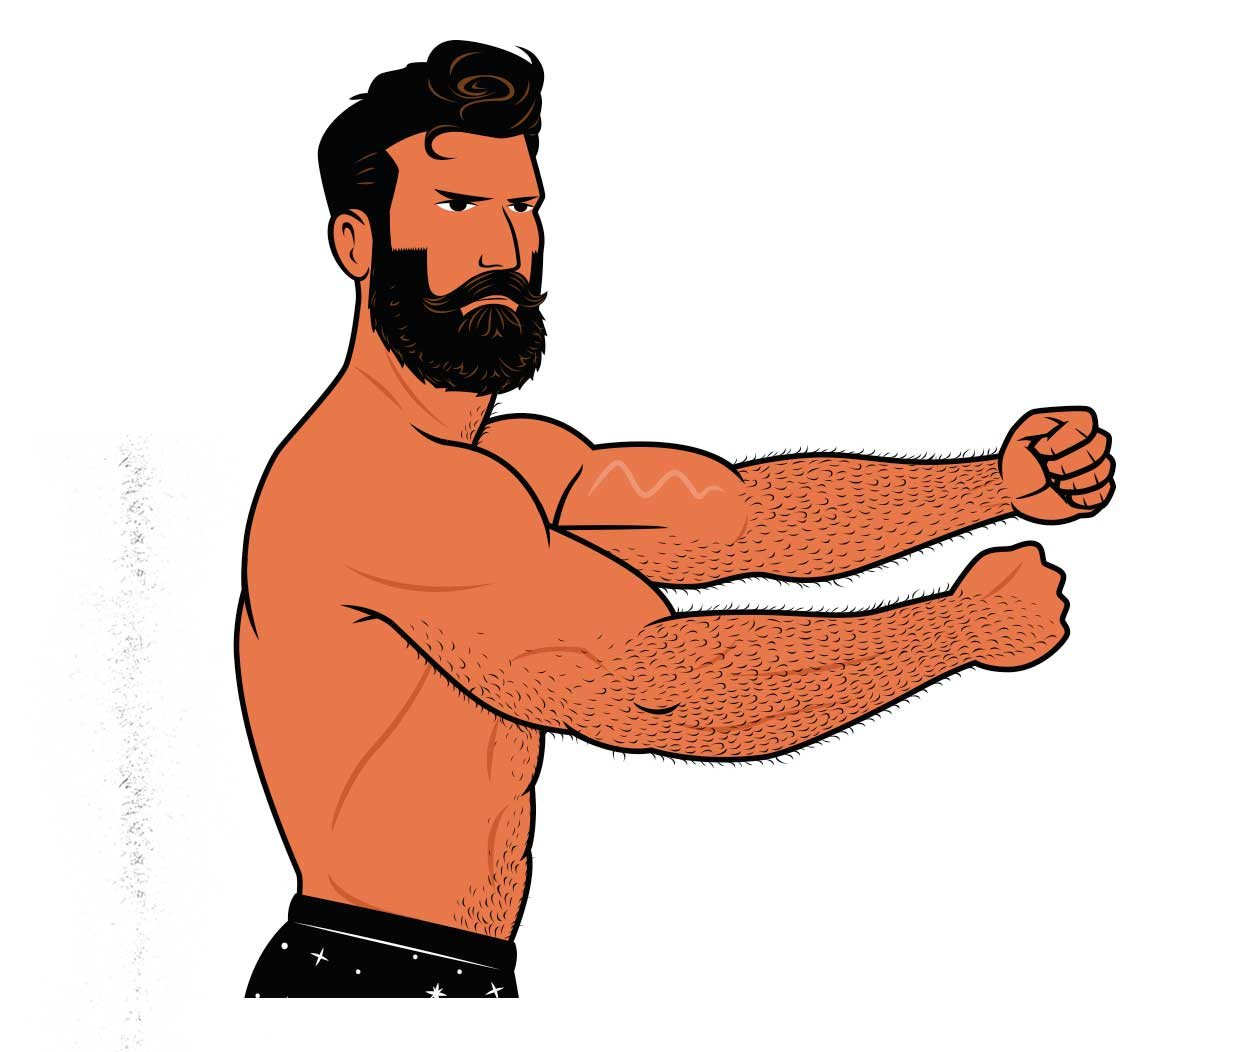 Illustration of a man flexing his arms.